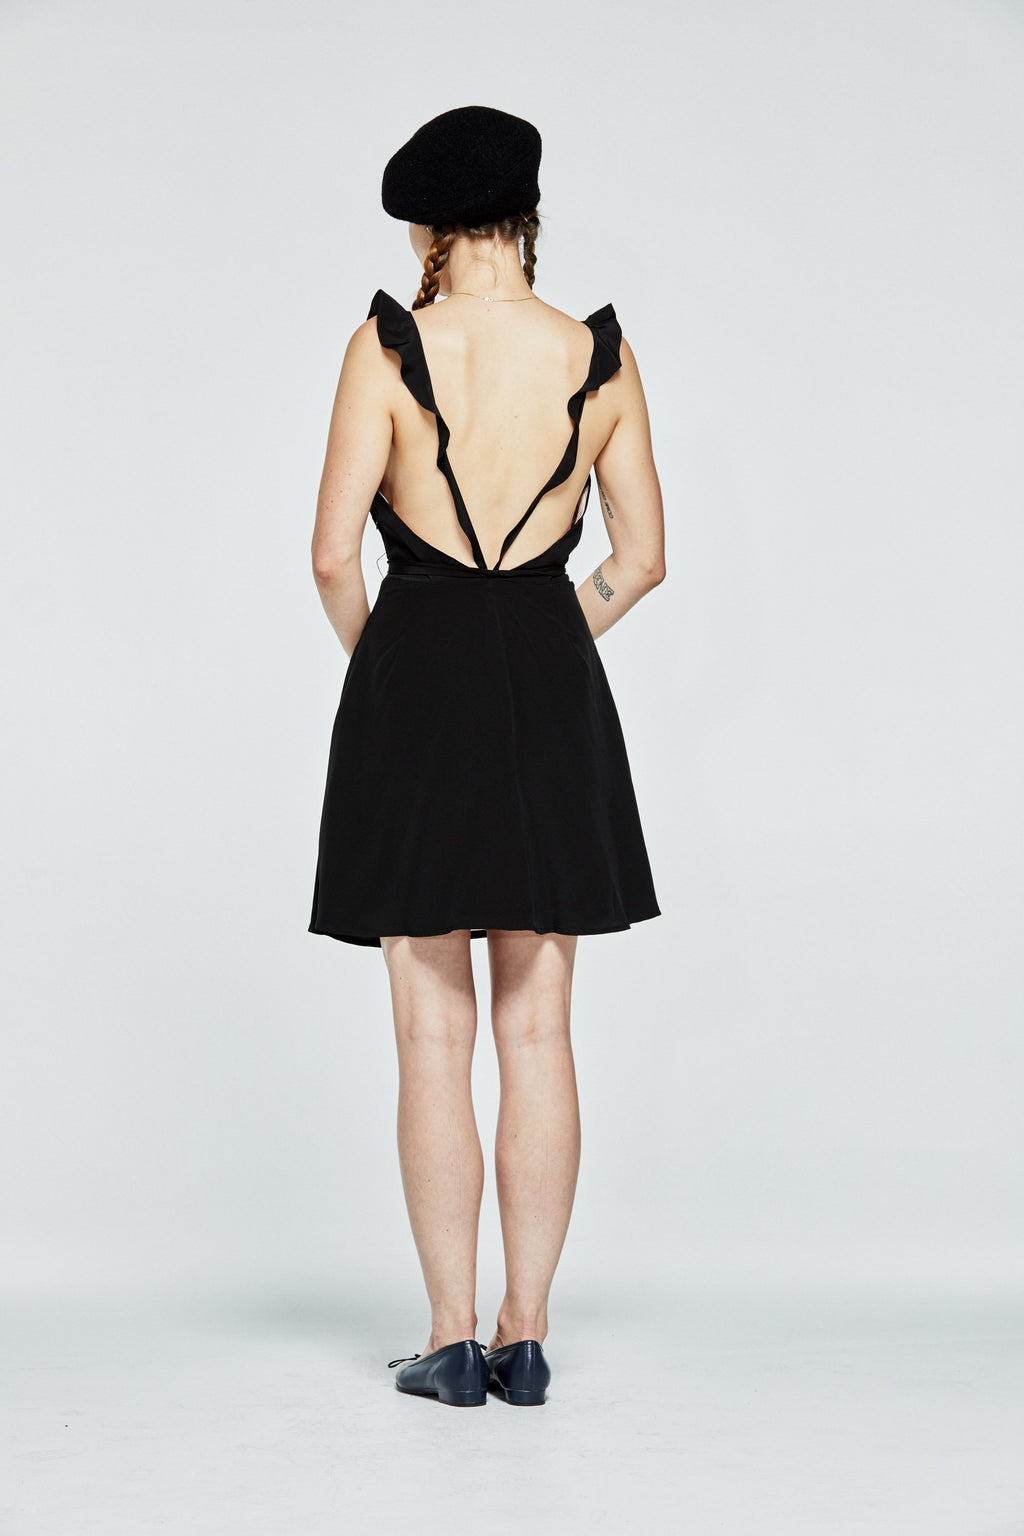 Black Cerisiere Dress